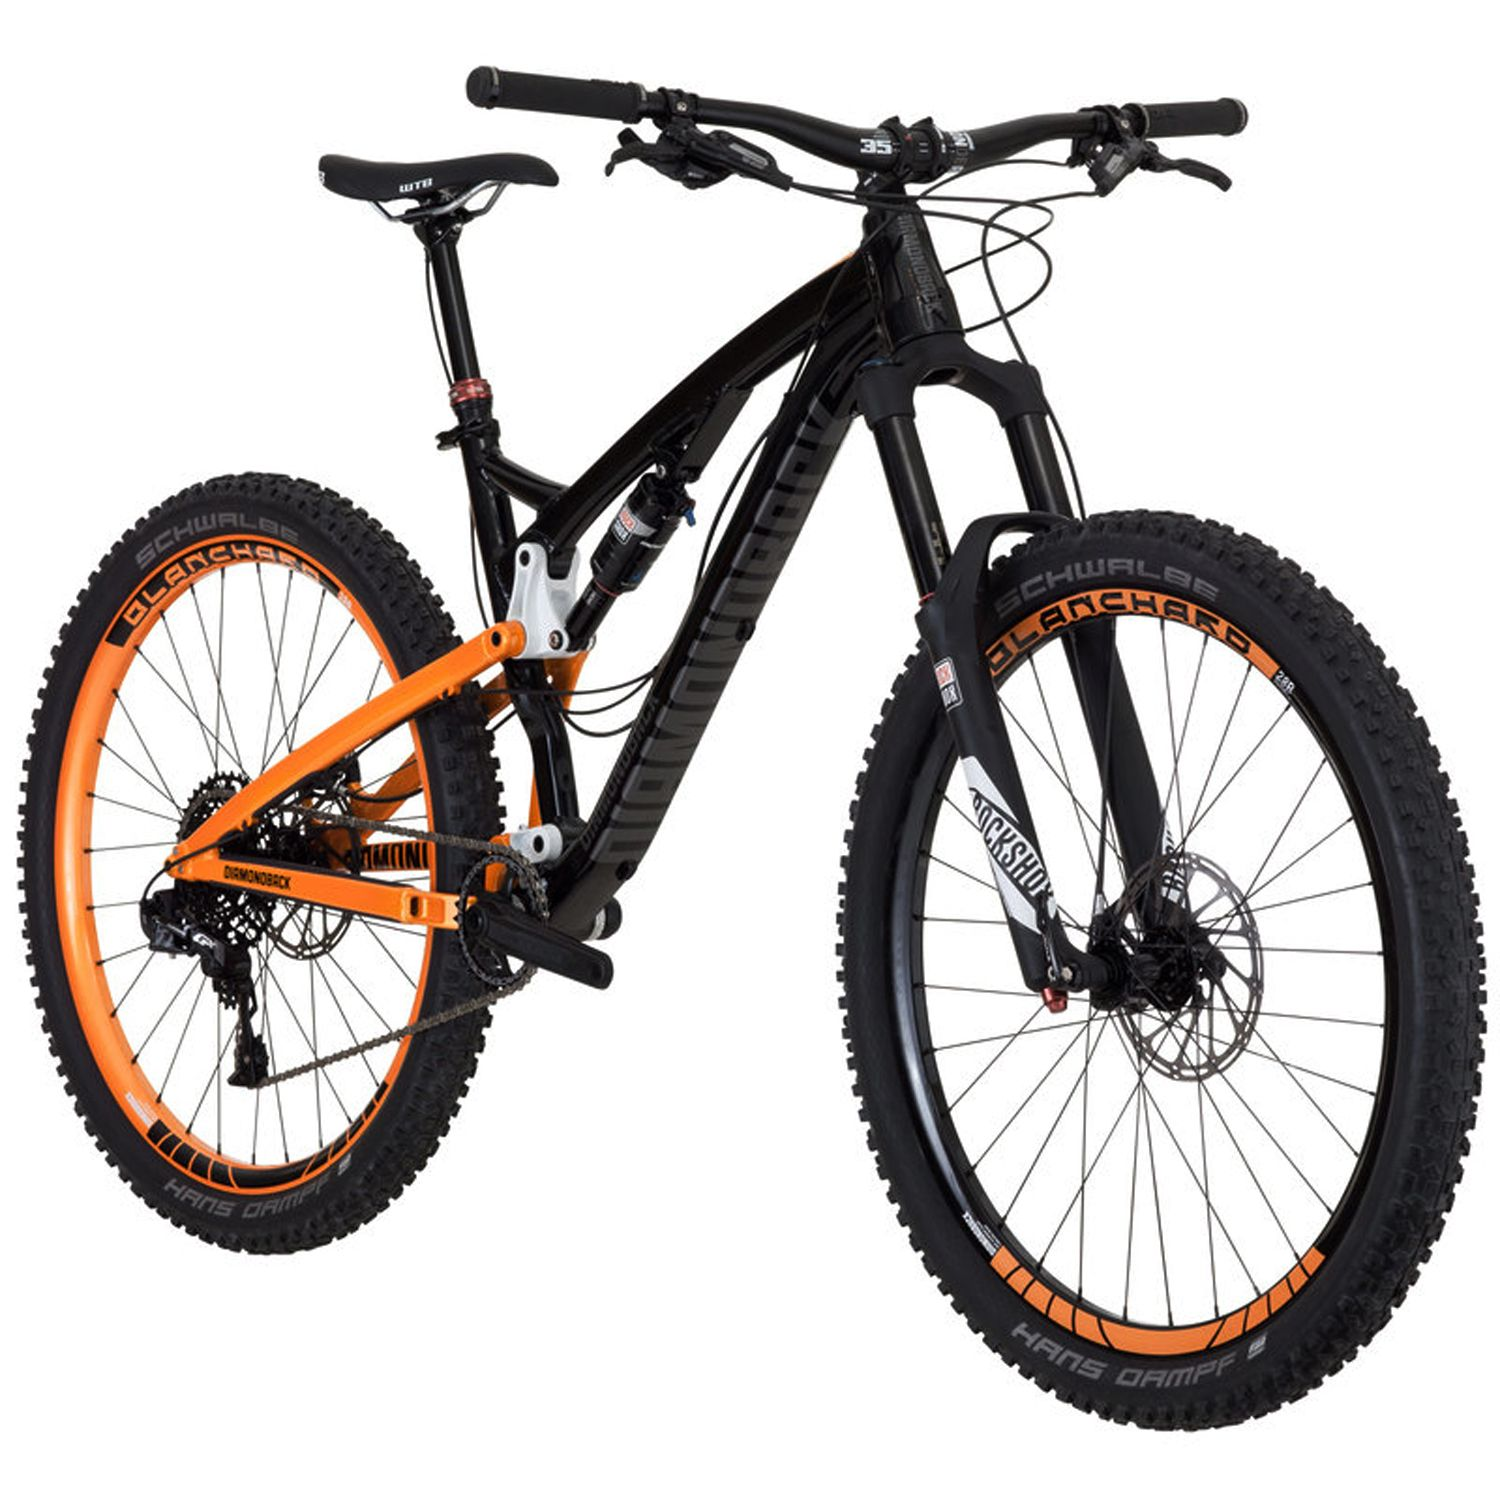 mountain bikes Mountain biking is a great leisure activity and sport it is suitable for young and old, novice and expert whether you want to explore your local parks and canal paths or venture out on to moorland or woodland single tracks.